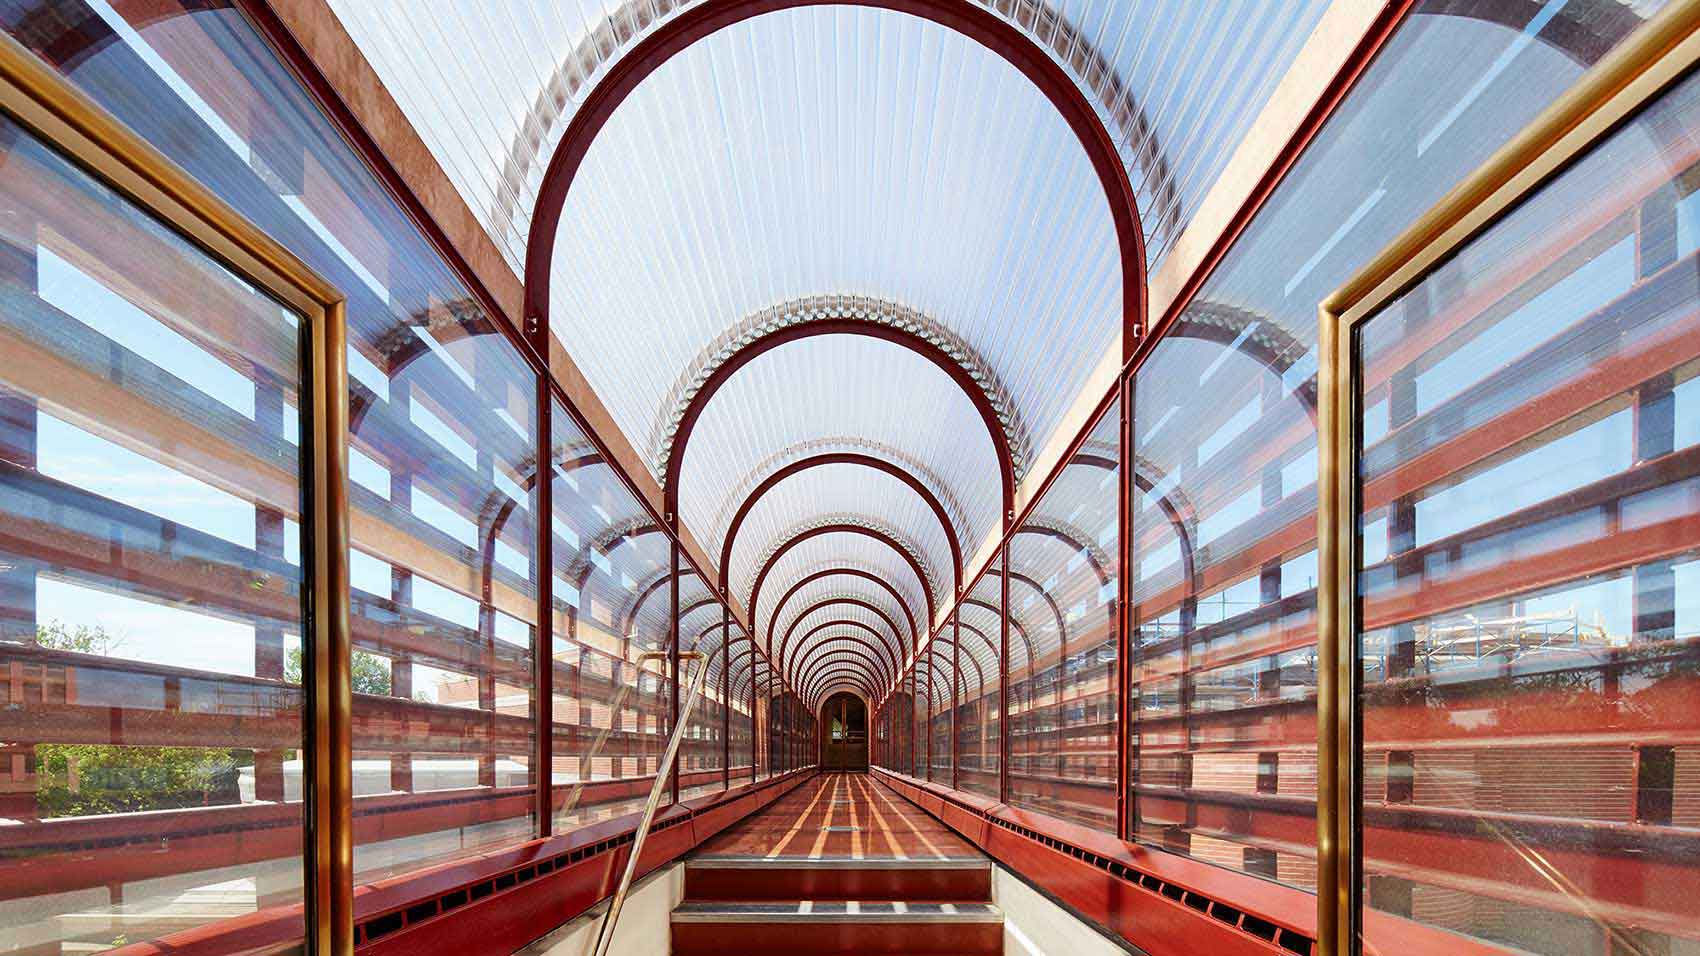 Frank Lloyd Wright designed catwalk on SC Johnson global headquarters campus